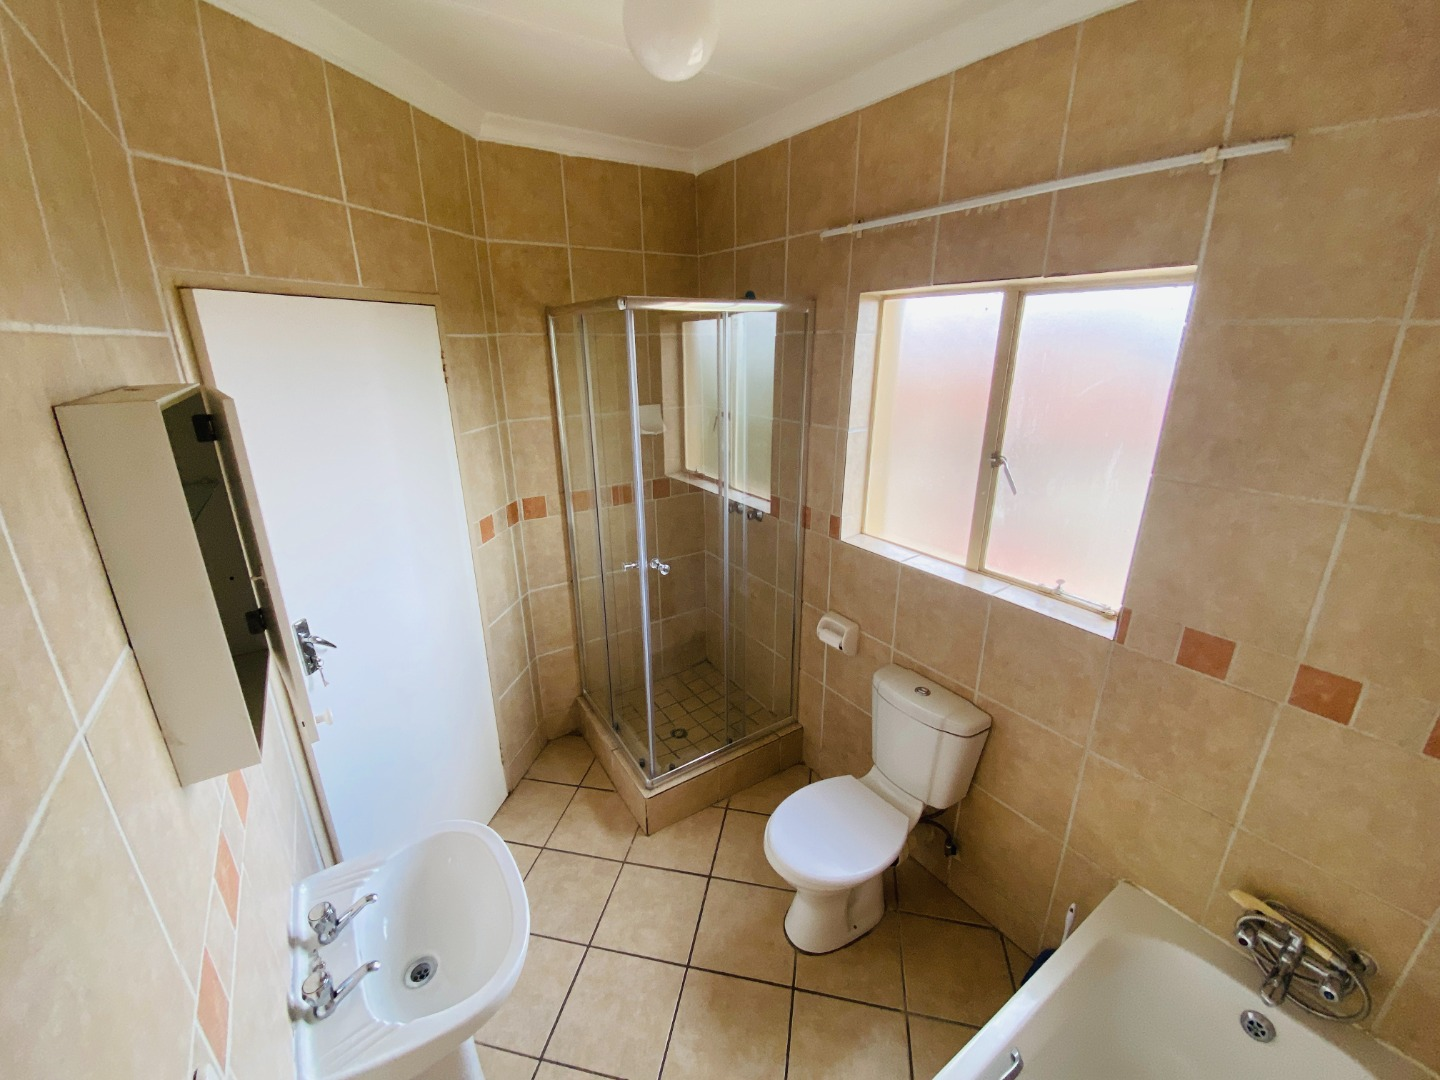 2 Bedroom Apartment / Flat For Sale in Country View